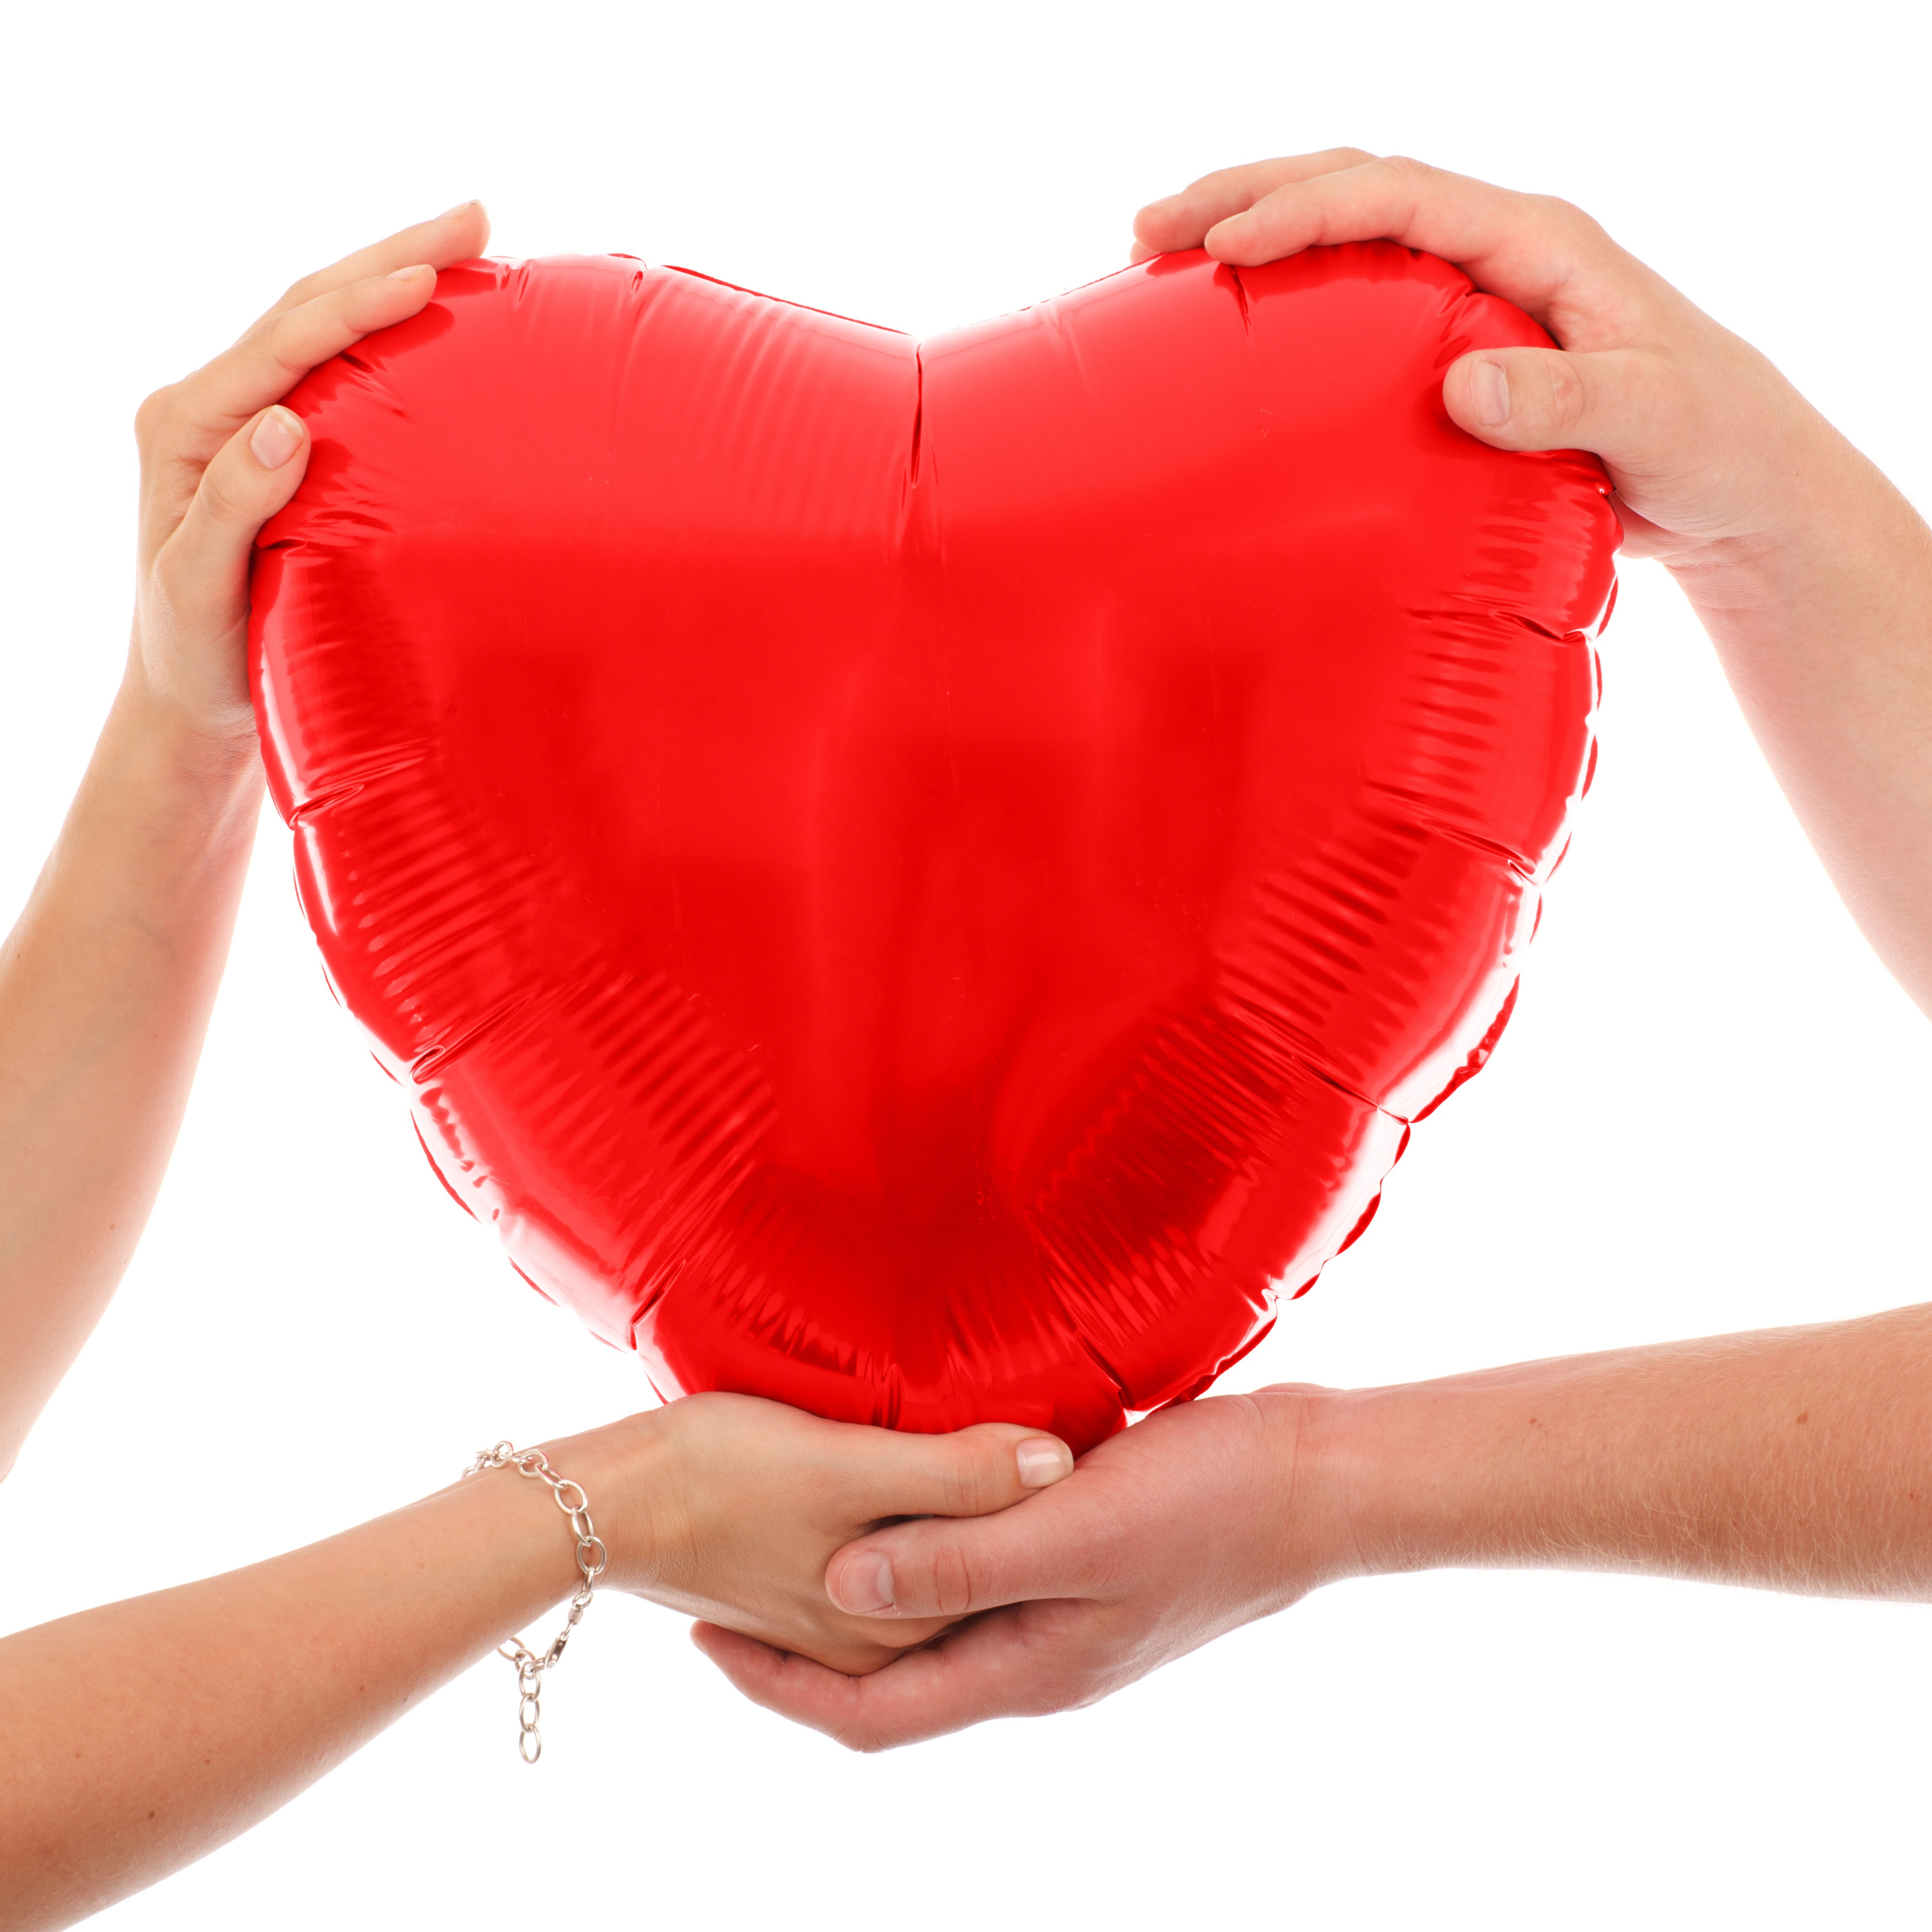 hands_holding_red_heart_205202.jpg